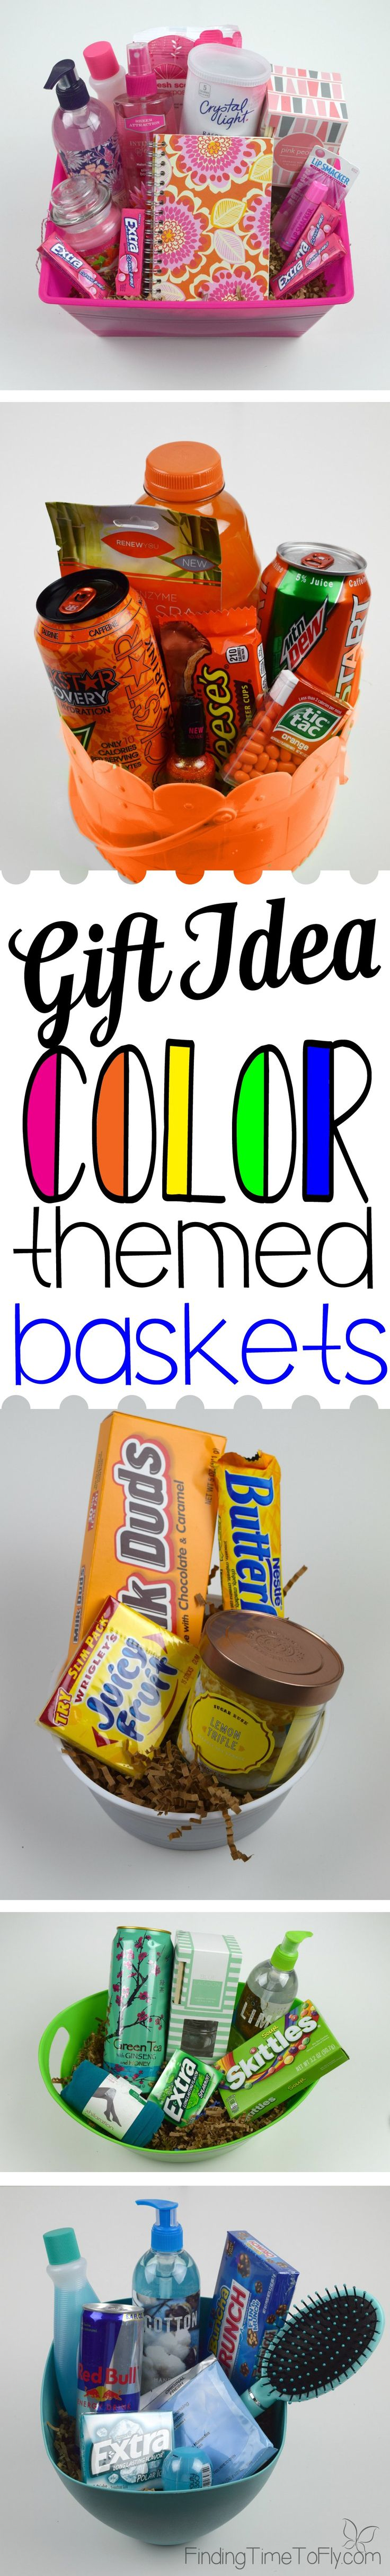 Best 25 Themed t baskets ideas on Pinterest